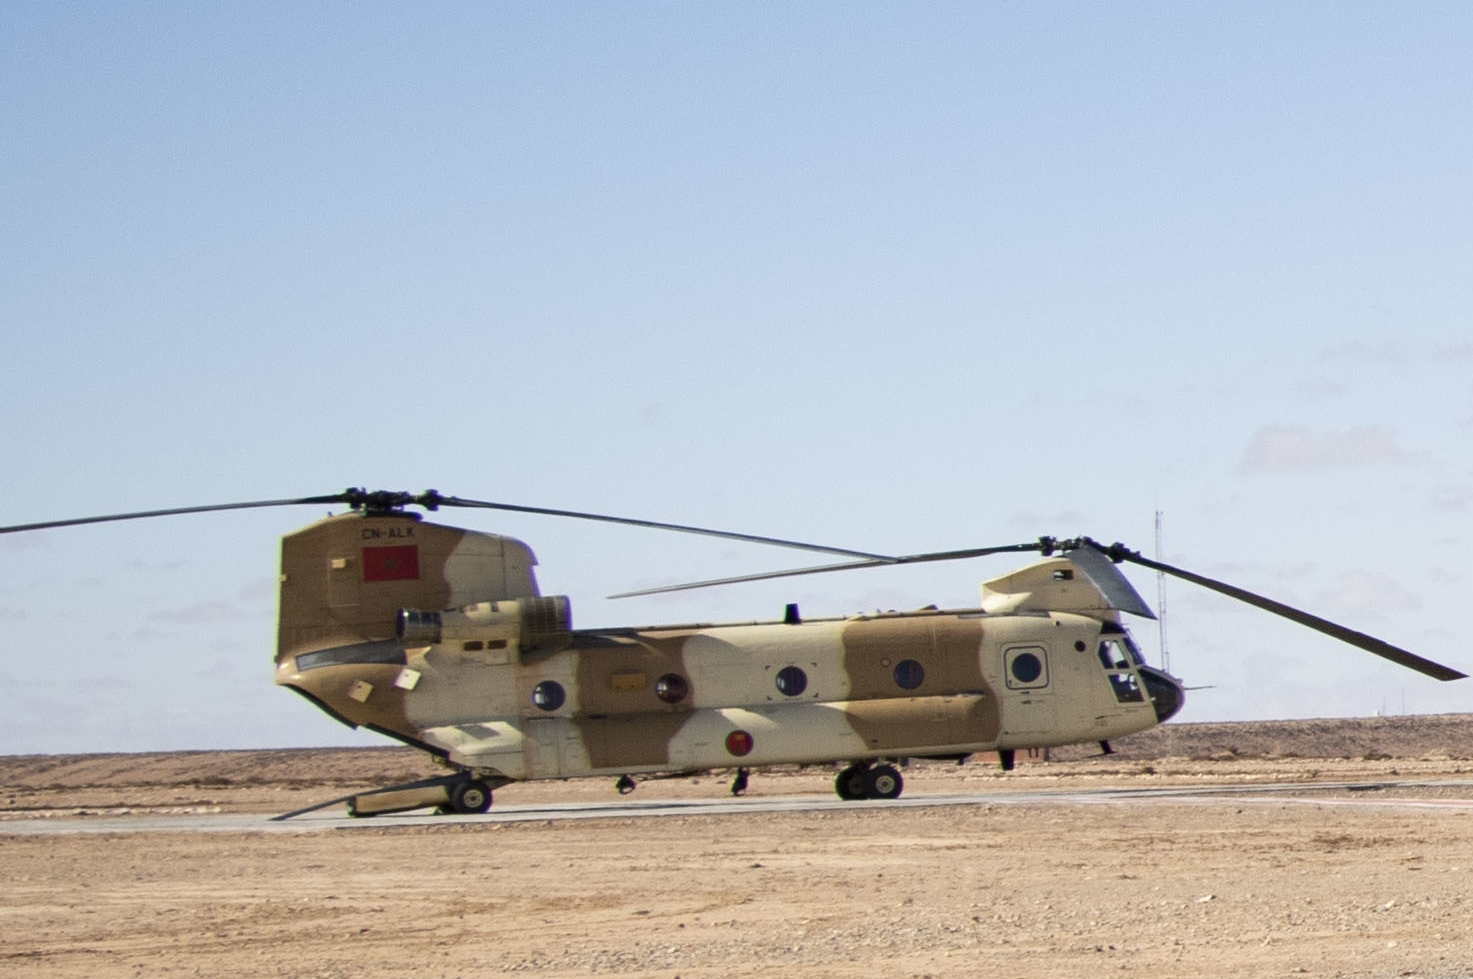 CH-47D CHINOOK des Forces Royales Air  - Page 3 49250465782_33f64bd769_o